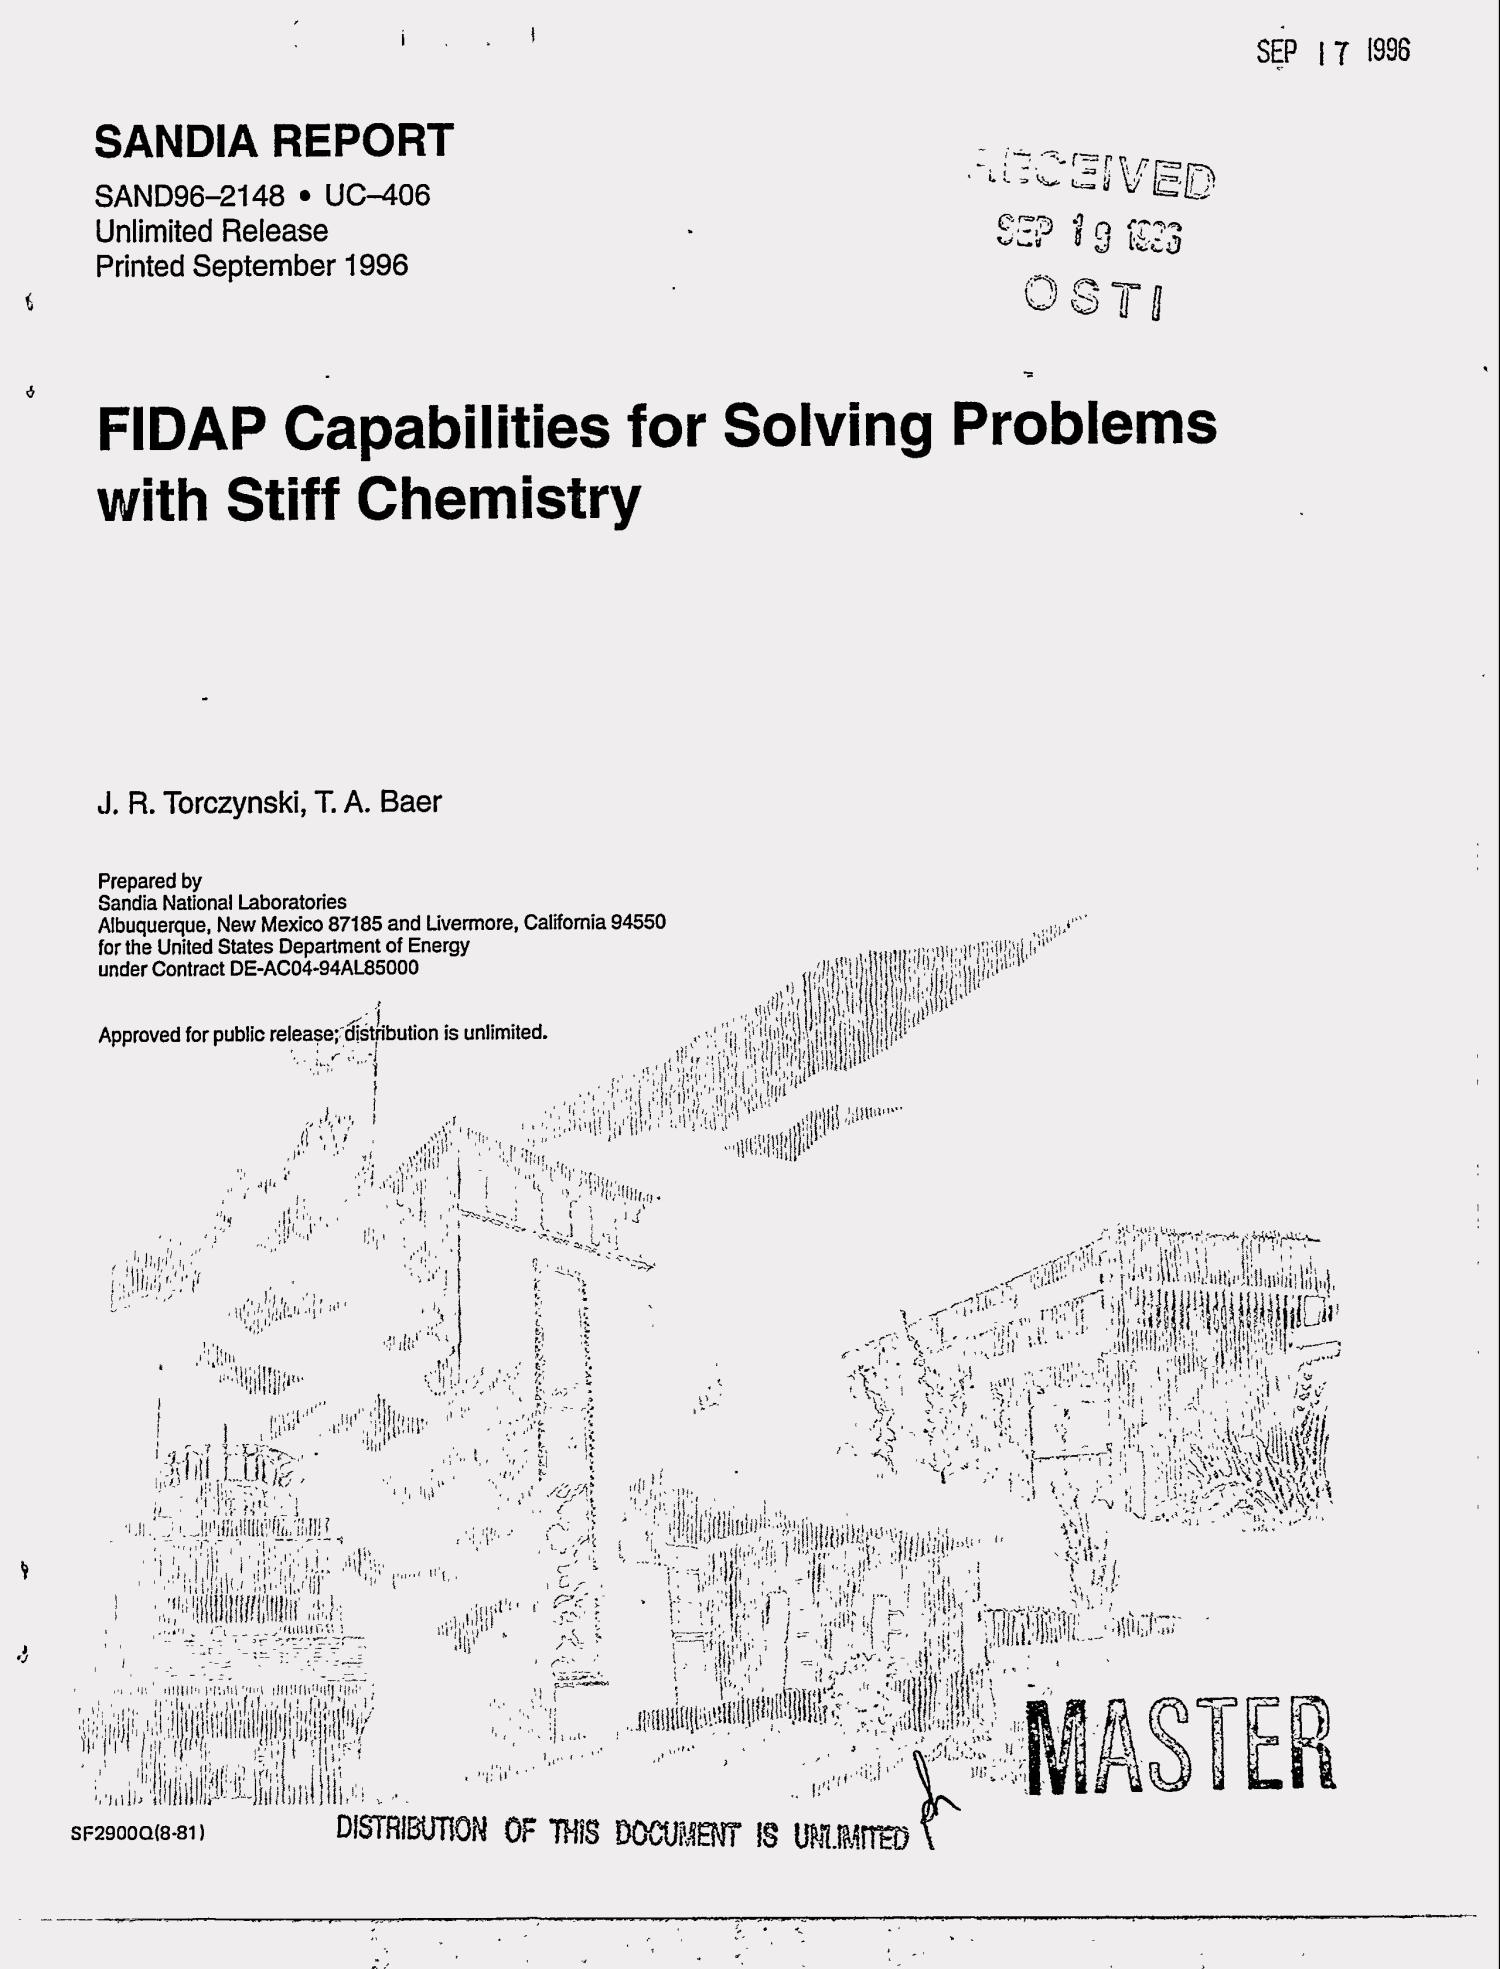 FIDAP capabilities for solving problems with stiff chemistry                                                                                                      [Sequence #]: 1 of 36